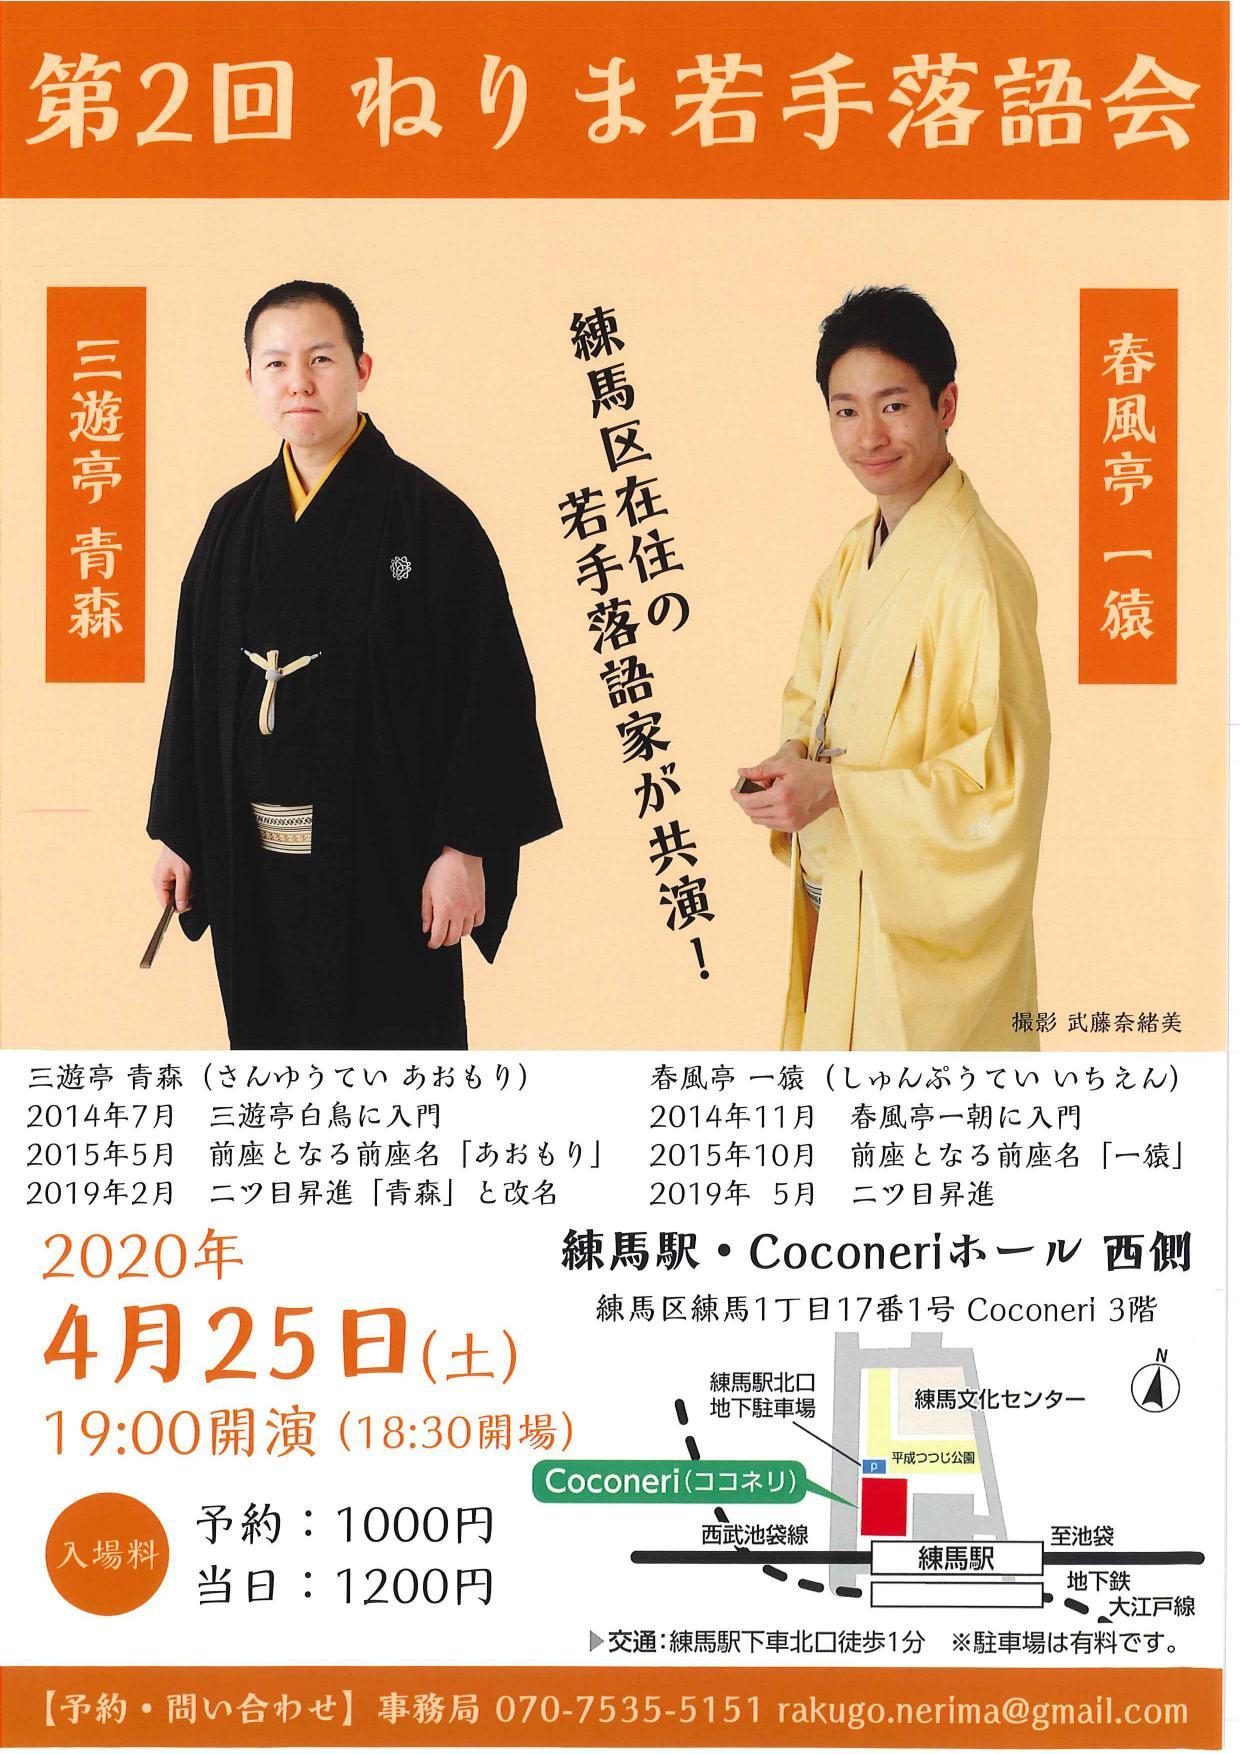 The second nerima young person rakugo society image